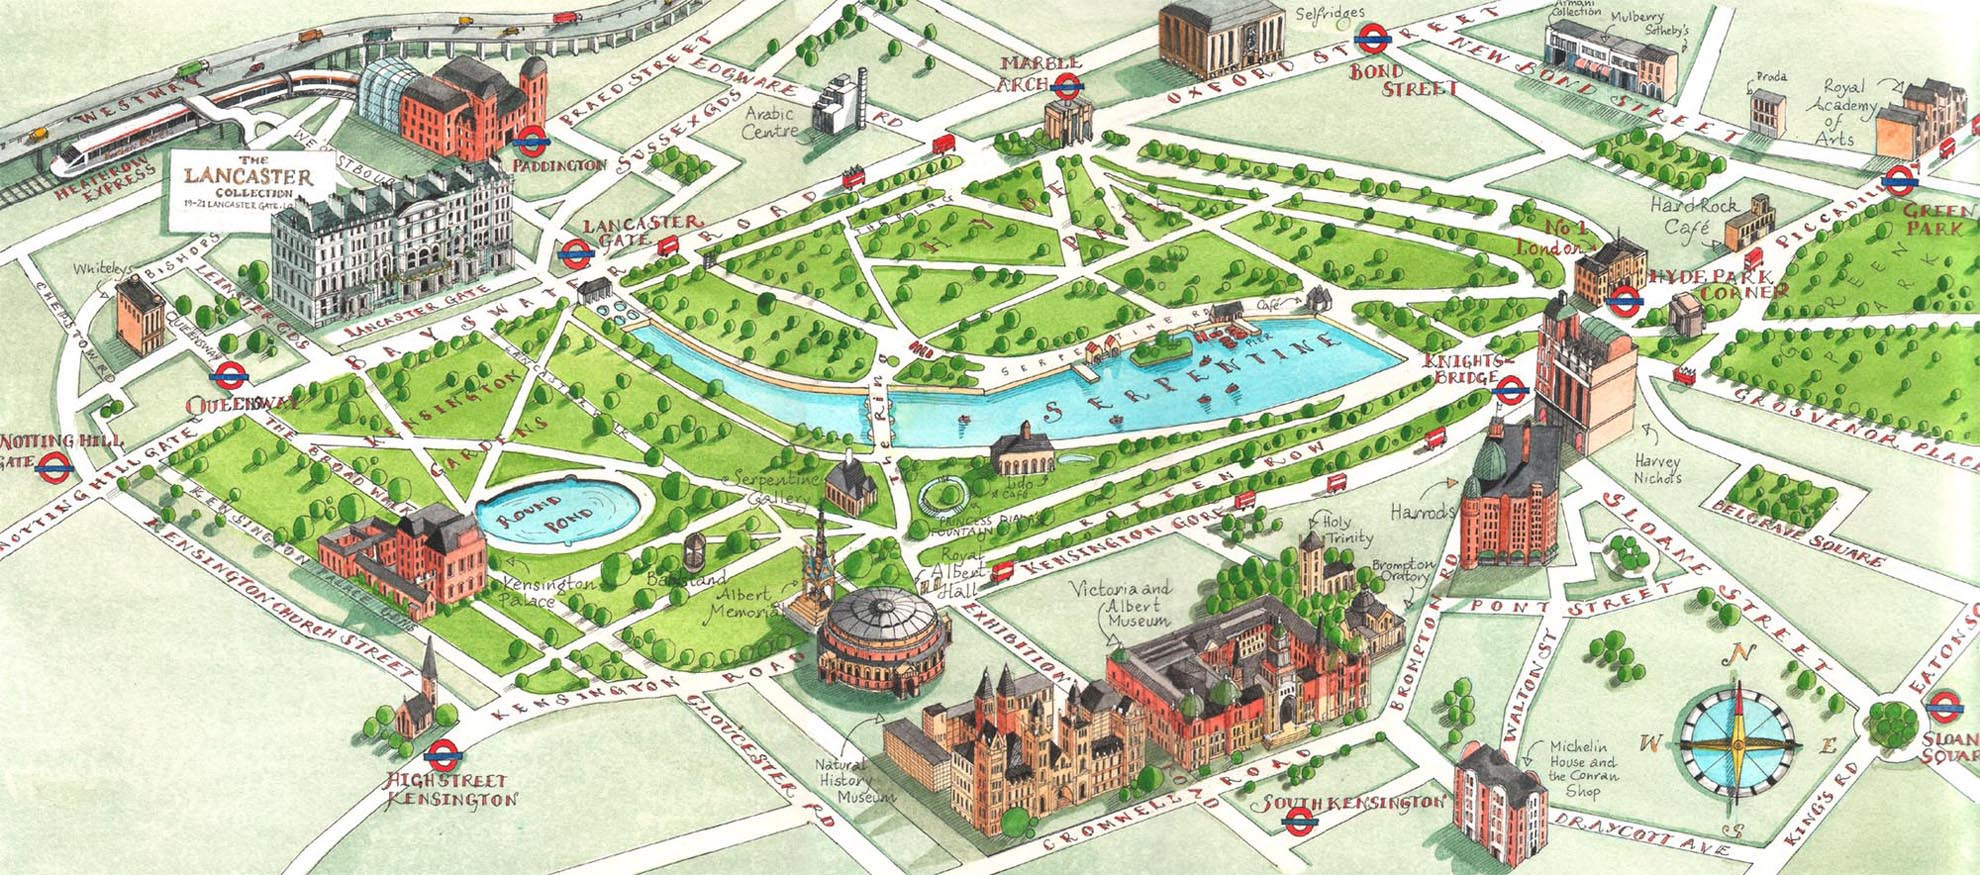 Mapa do Hyde Park, em Londres